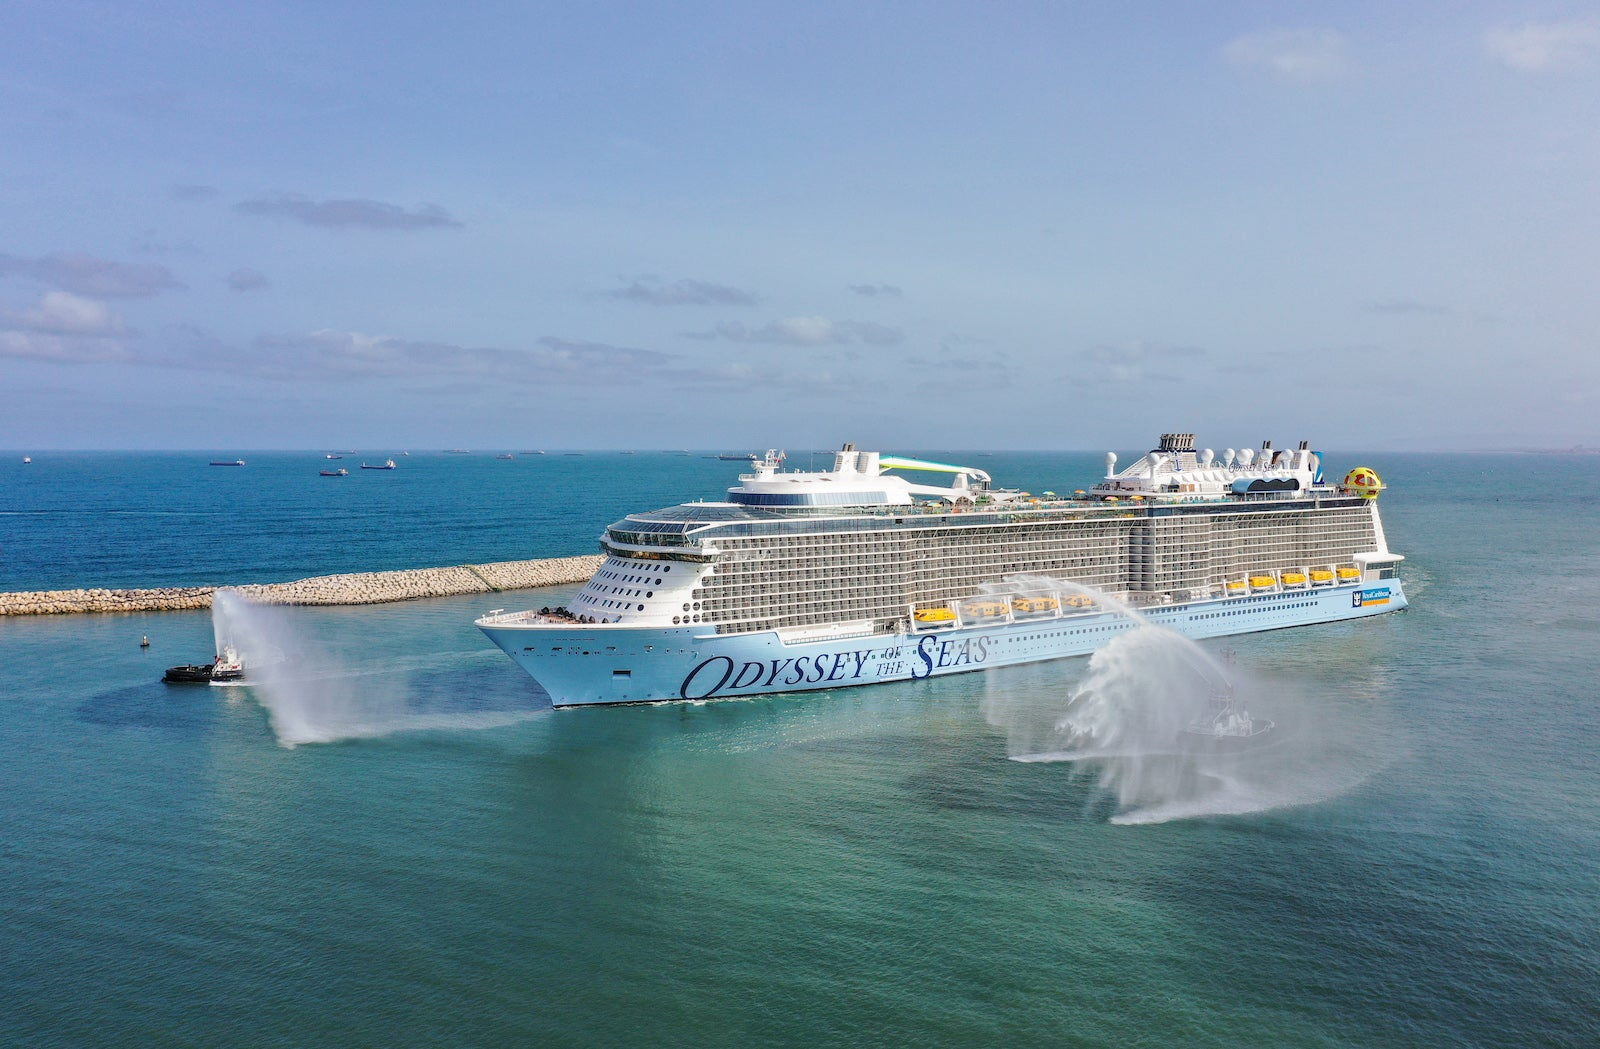 Cruise line CEOs: Challenges for industry remain, but 'future is bright' for cruising - The Points Guy